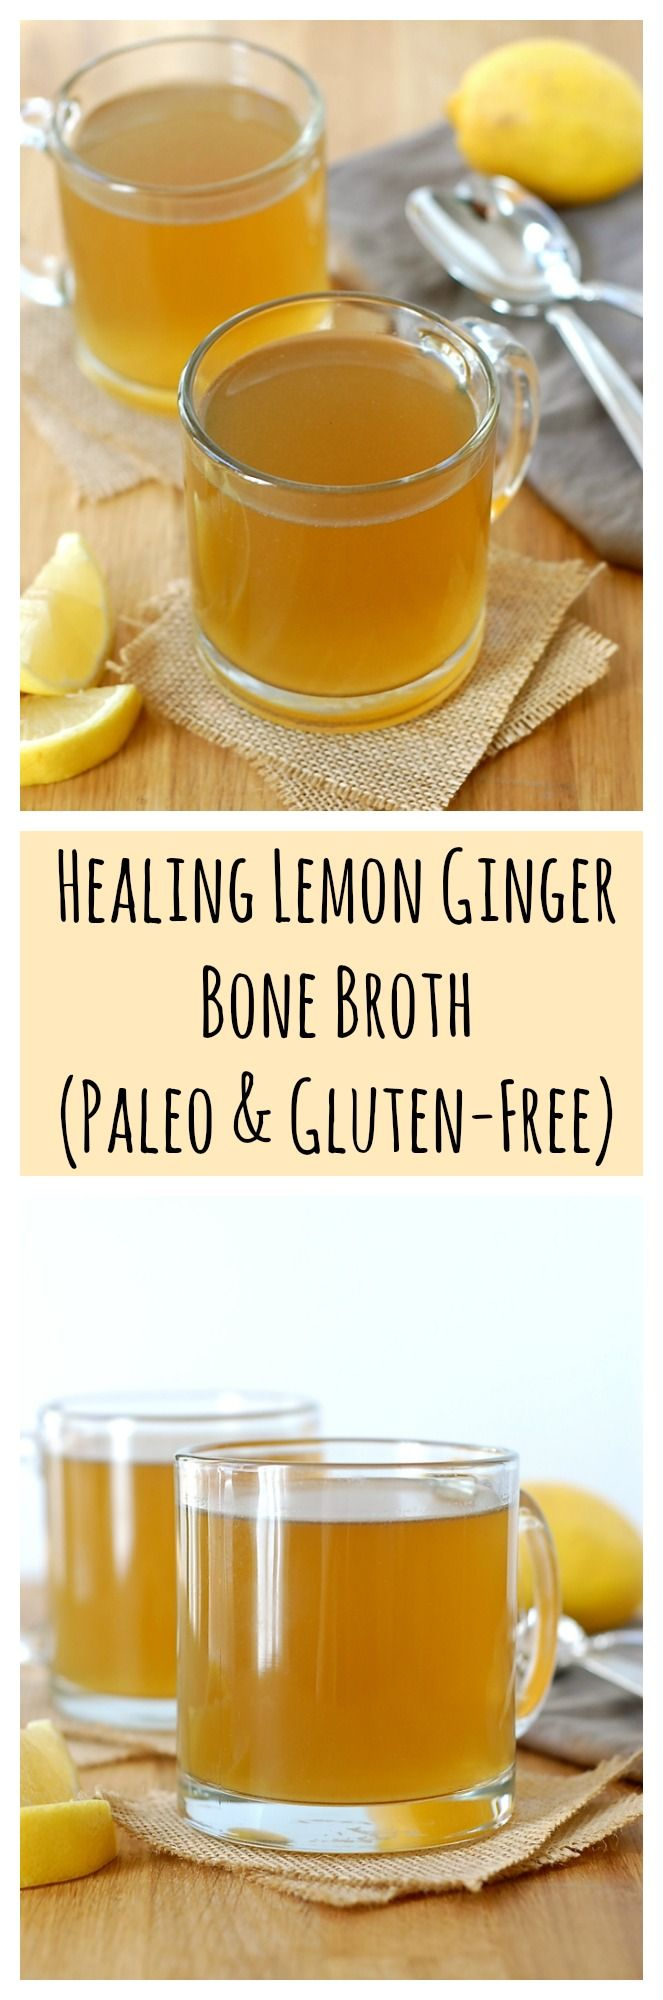 Healing Lemon Ginger Bone Broth (Paleo & Gluten-Free) - I would sub grass-fed butter, ghee, or coconut oil in this recipe!